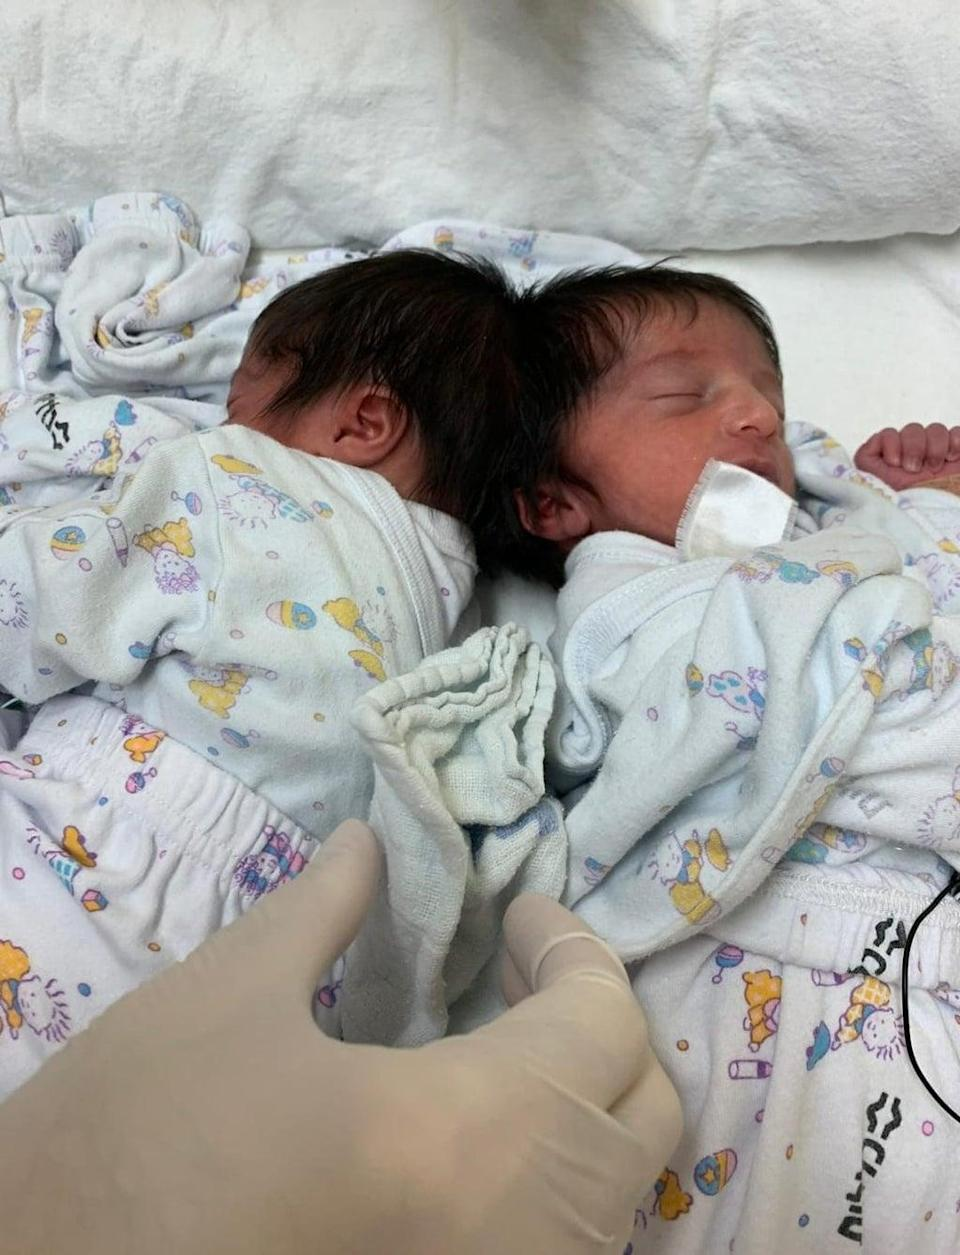 The twins were successfully separated (Soroka Medical Centre/PA)